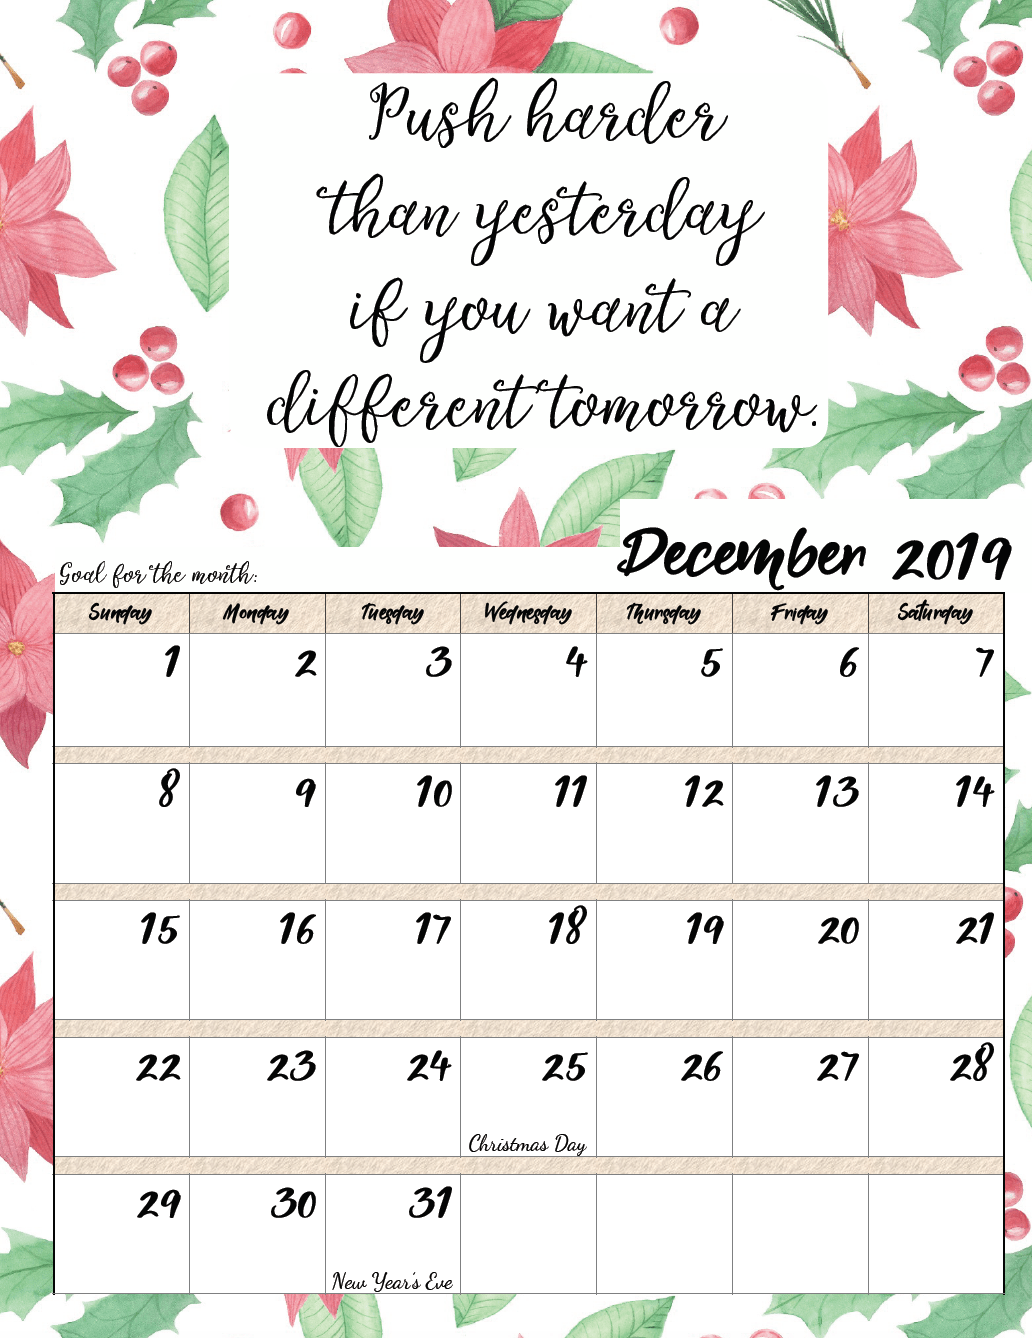 December. FREE Printable 2019 Monthly Motivational Calendars. Space for setting goals, different motivational quote each month, holidays marked. #free #freeprintable #printable #calendar #motivation